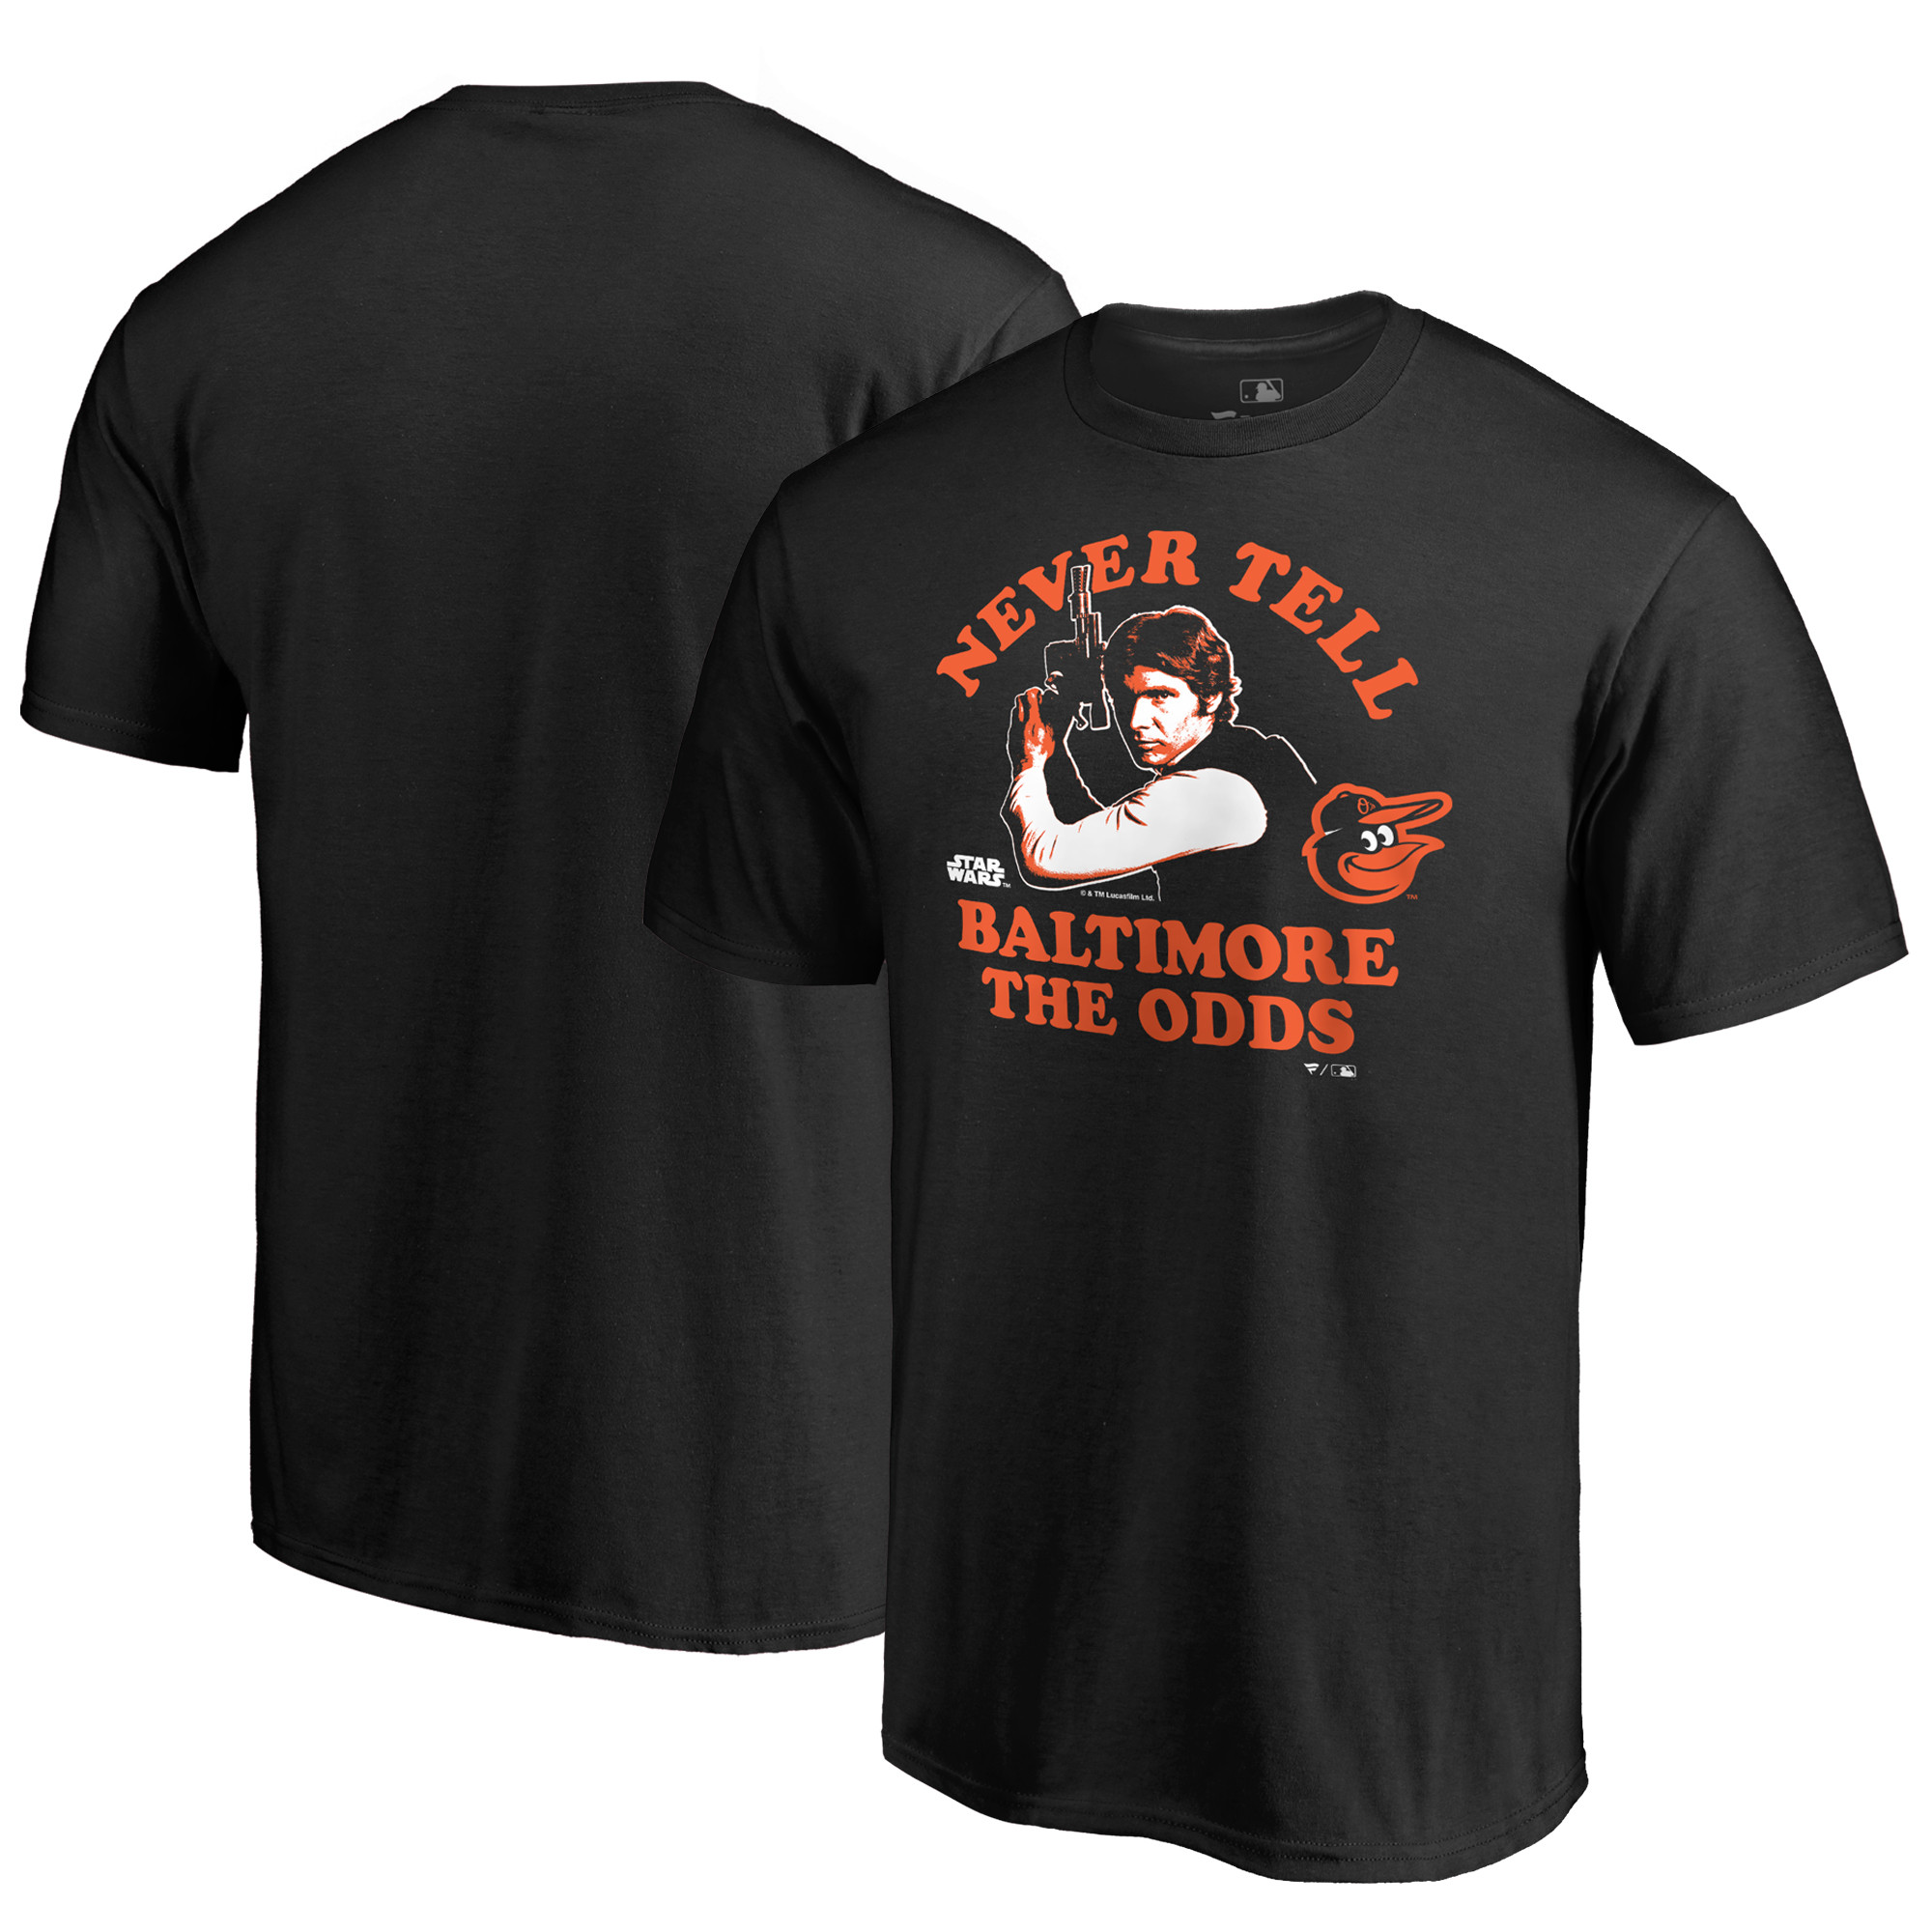 Baltimore Orioles Fanatics Branded Star Wars Never Tell The Odds T-Shirt - Black